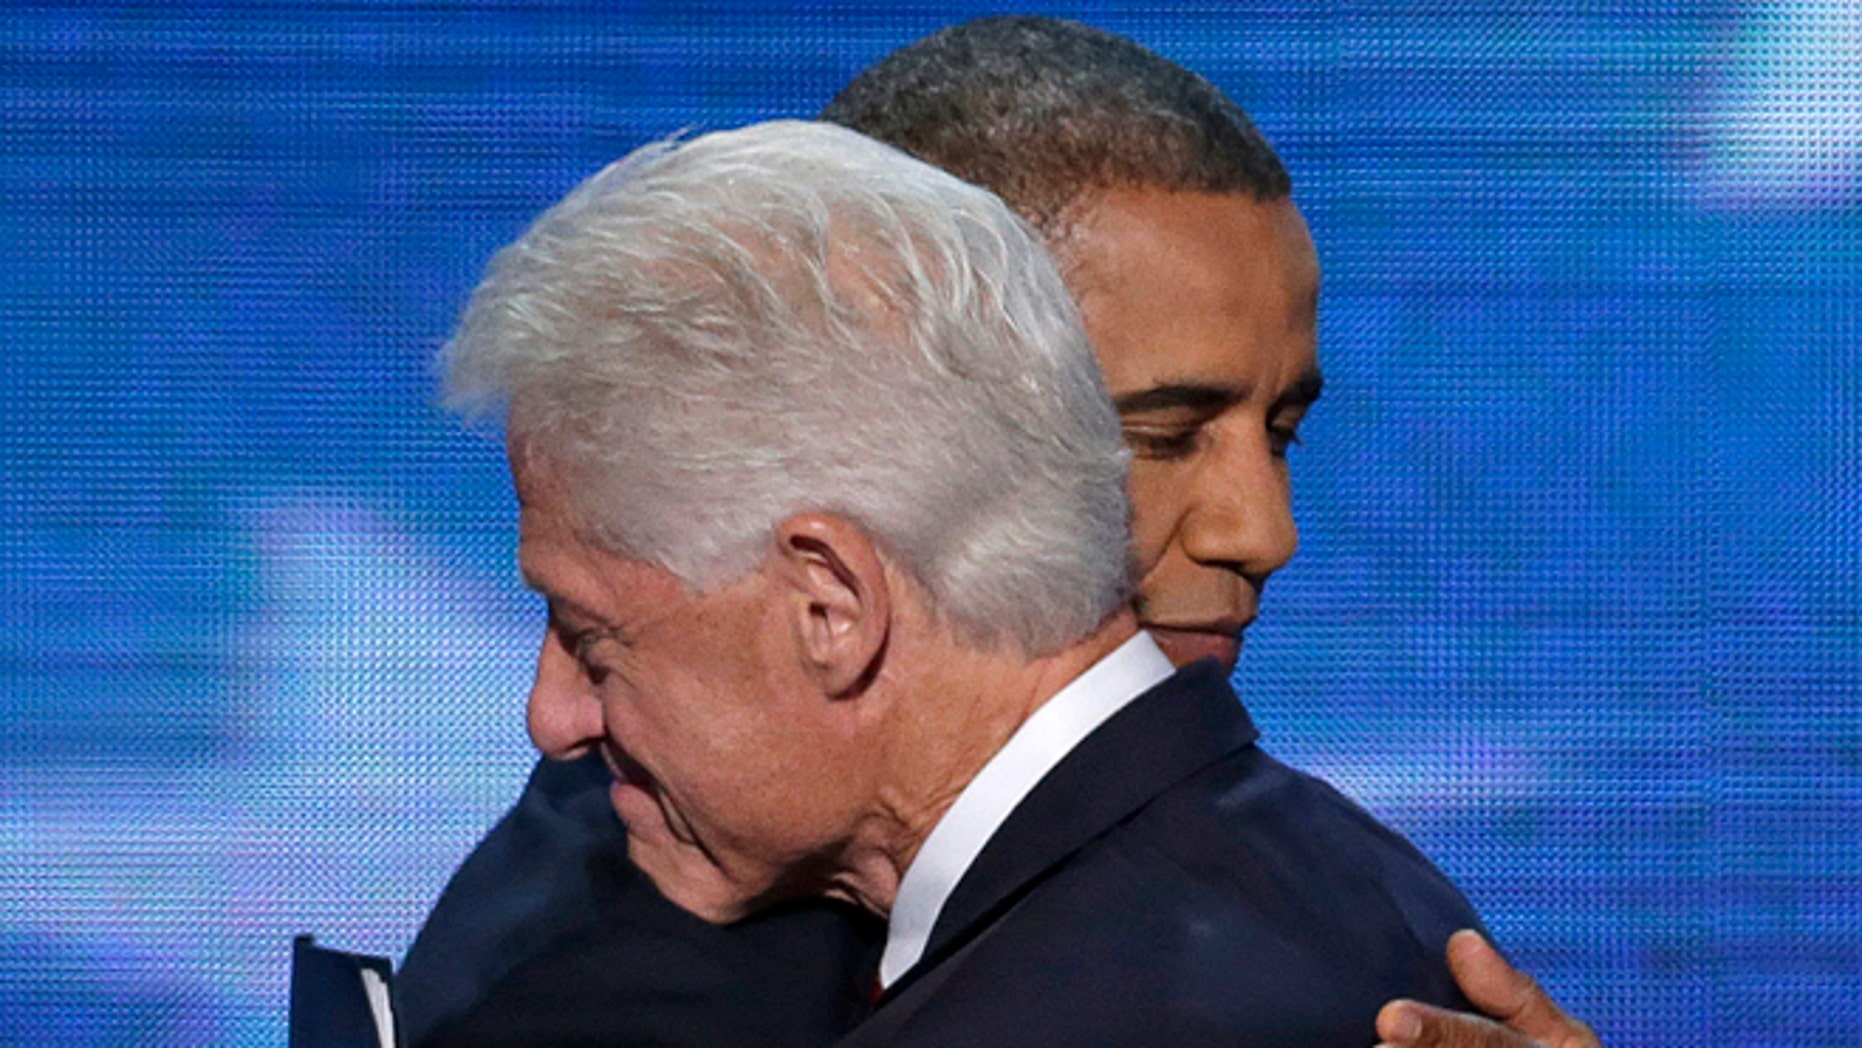 Sept. 5, 2012: Former President Bill Clinton hugs President Barack Obama after President Obama walked on stage after Clinton's speech the Democratic National Convention in Charlotte, N.C.